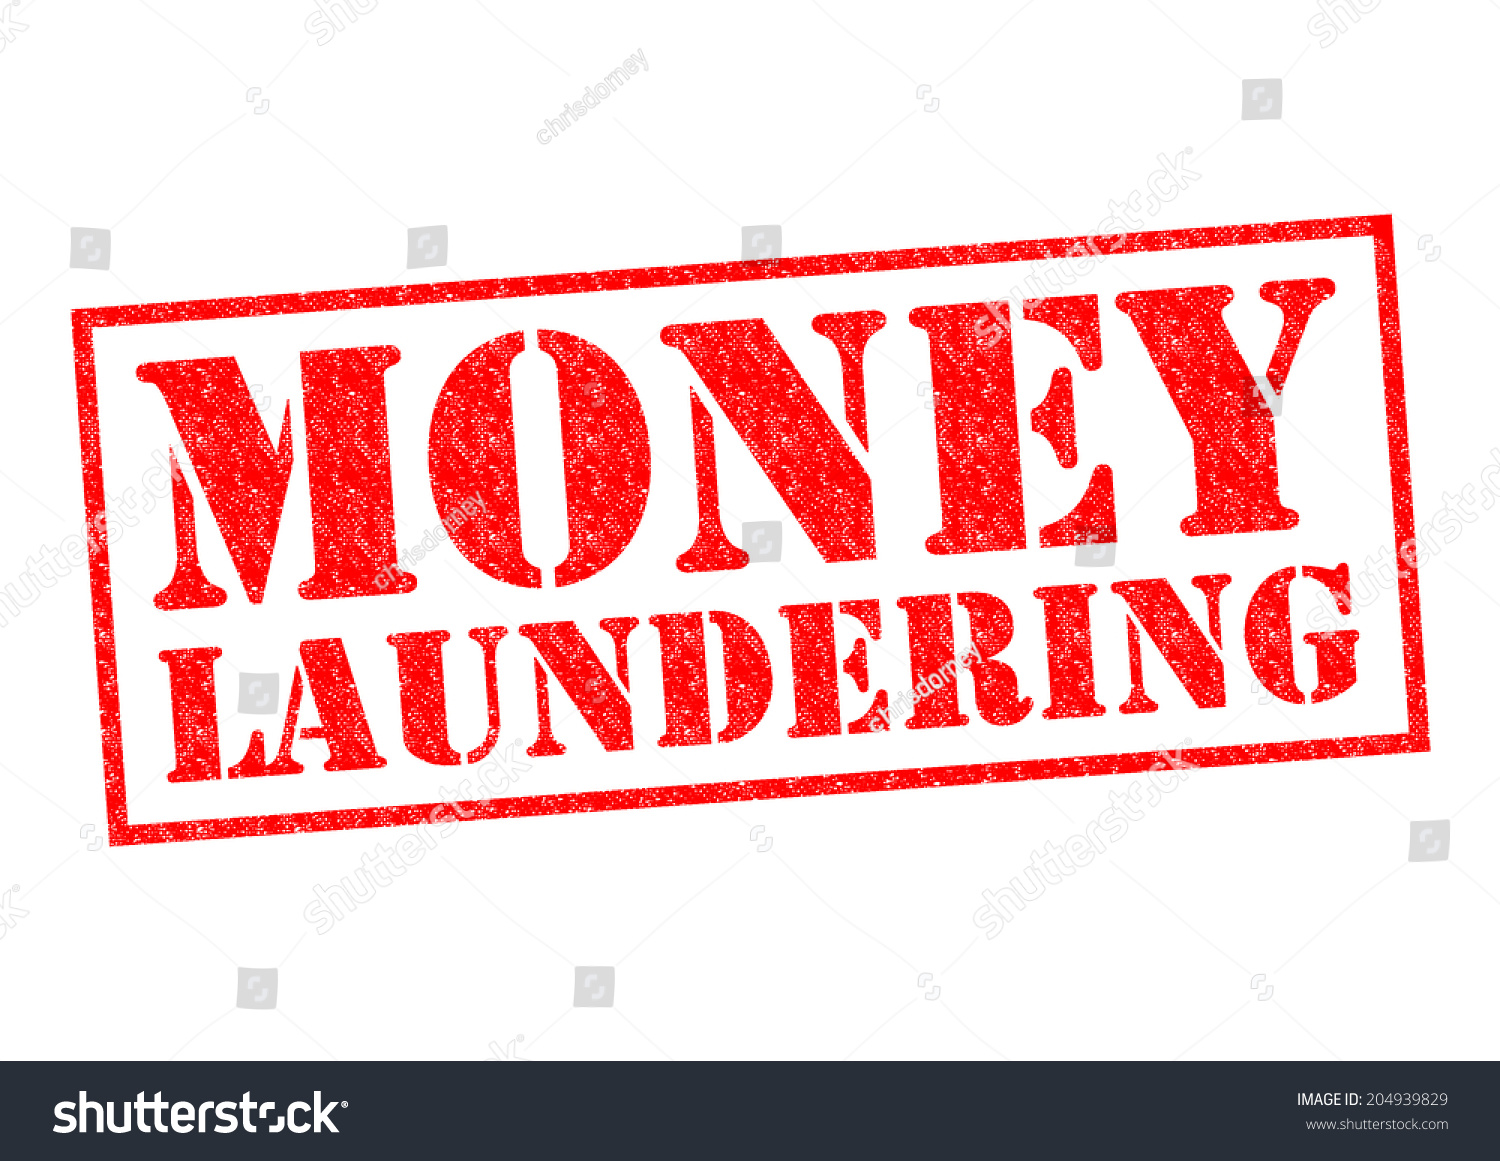 Money laundering red rubber stamp over stock illustration money laundering red rubber stamp over a white background buycottarizona Images